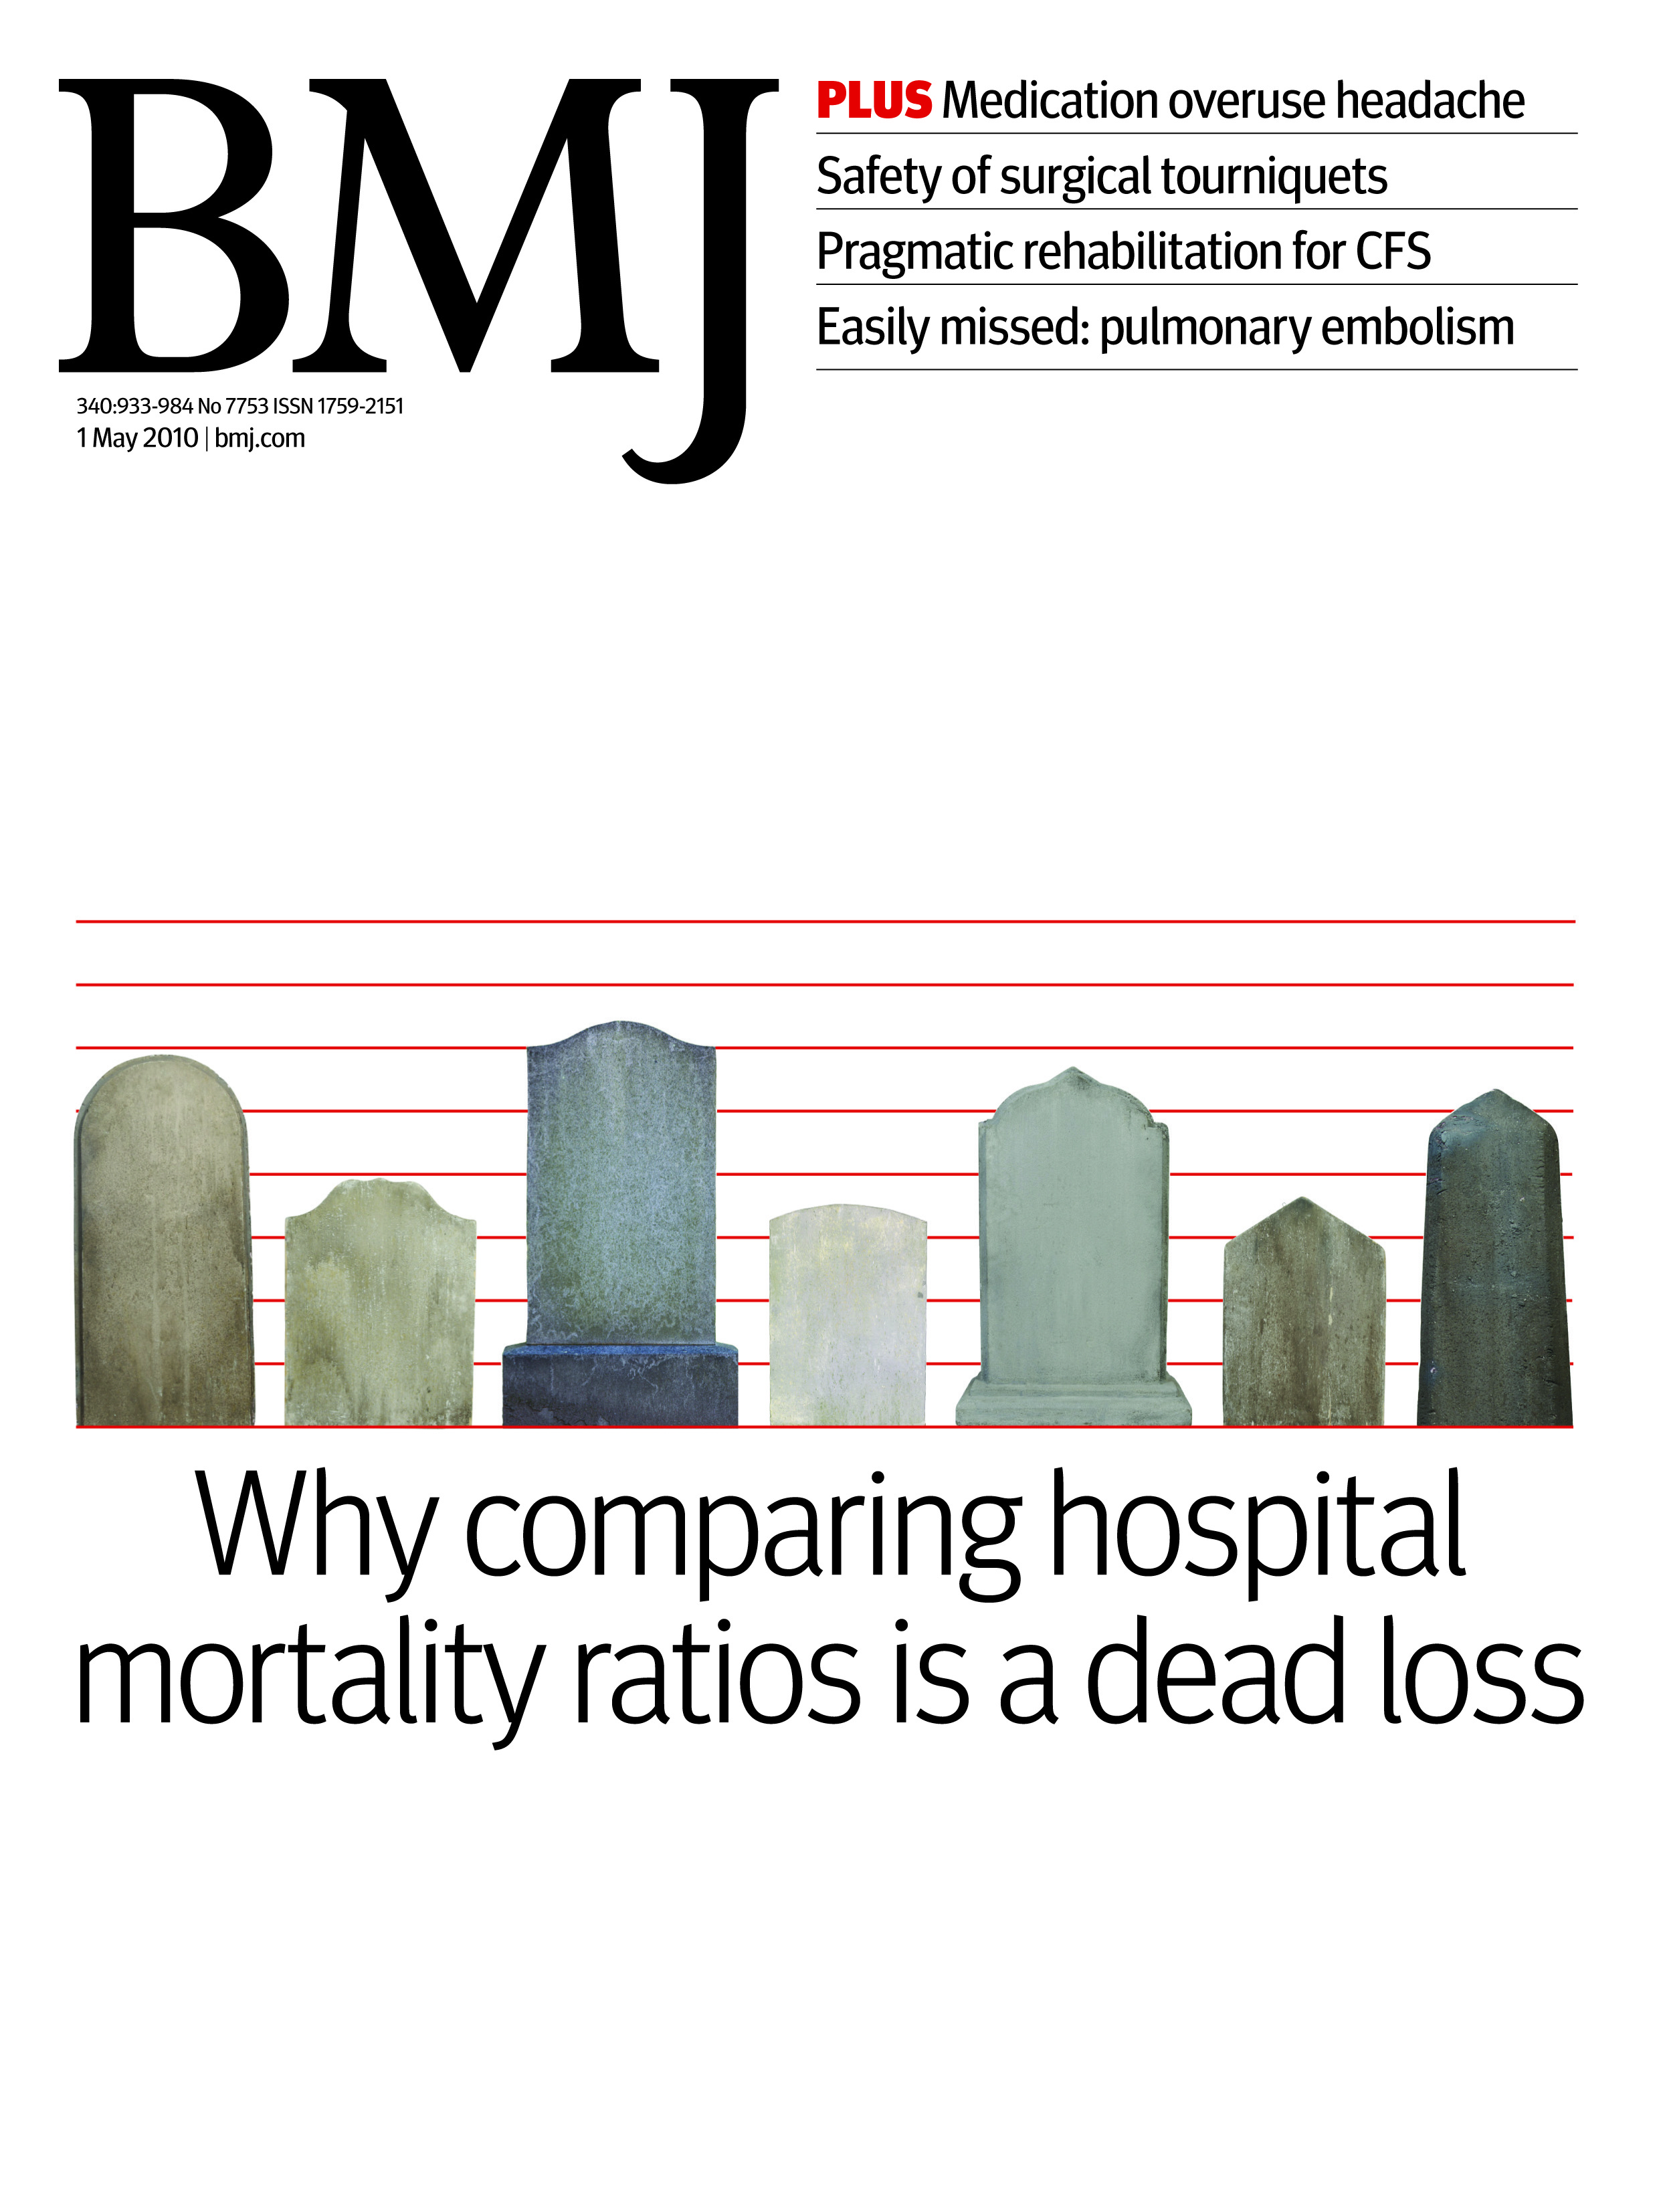 Using hospital mortality rates to judge hospital performance: a bad